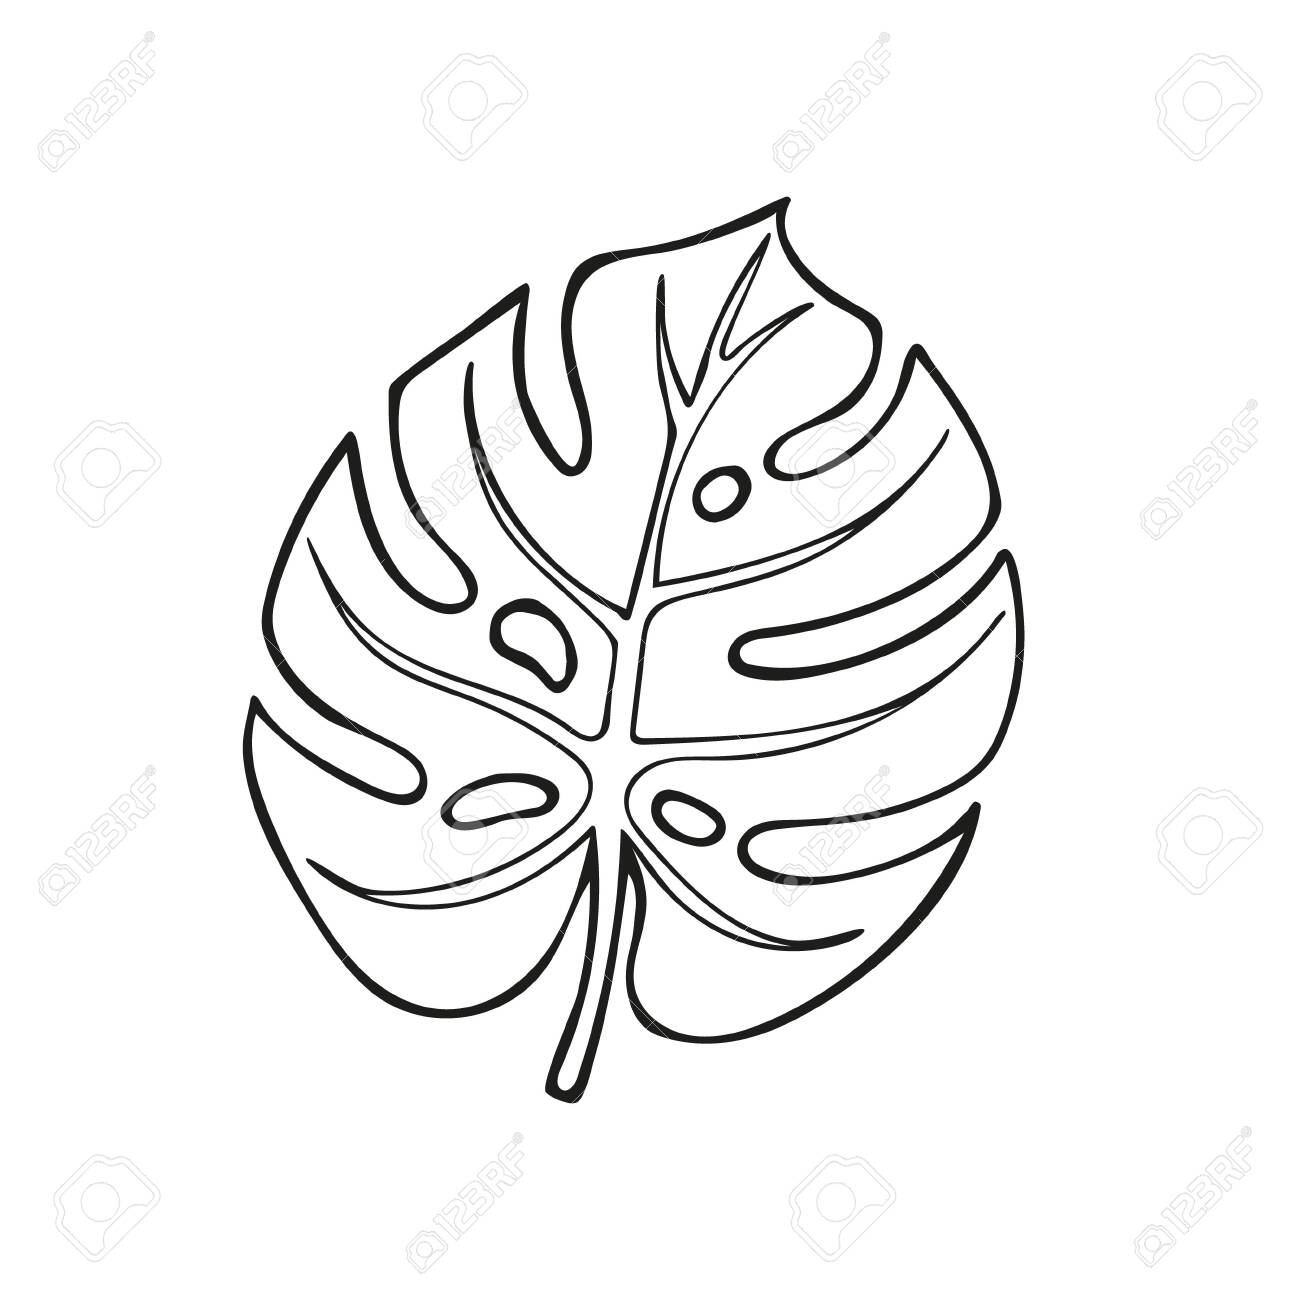 Single Hand Drawn Monstera Leaf Exotic Tropical Leaf In Doodle Royalty Free Cliparts Vectors And Stock Illustration Image 140640350 Collection of tropical leaf cliparts (47) tropical leaves clip art palm leaves outline single hand drawn monstera leaf exotic tropical leaf in doodle